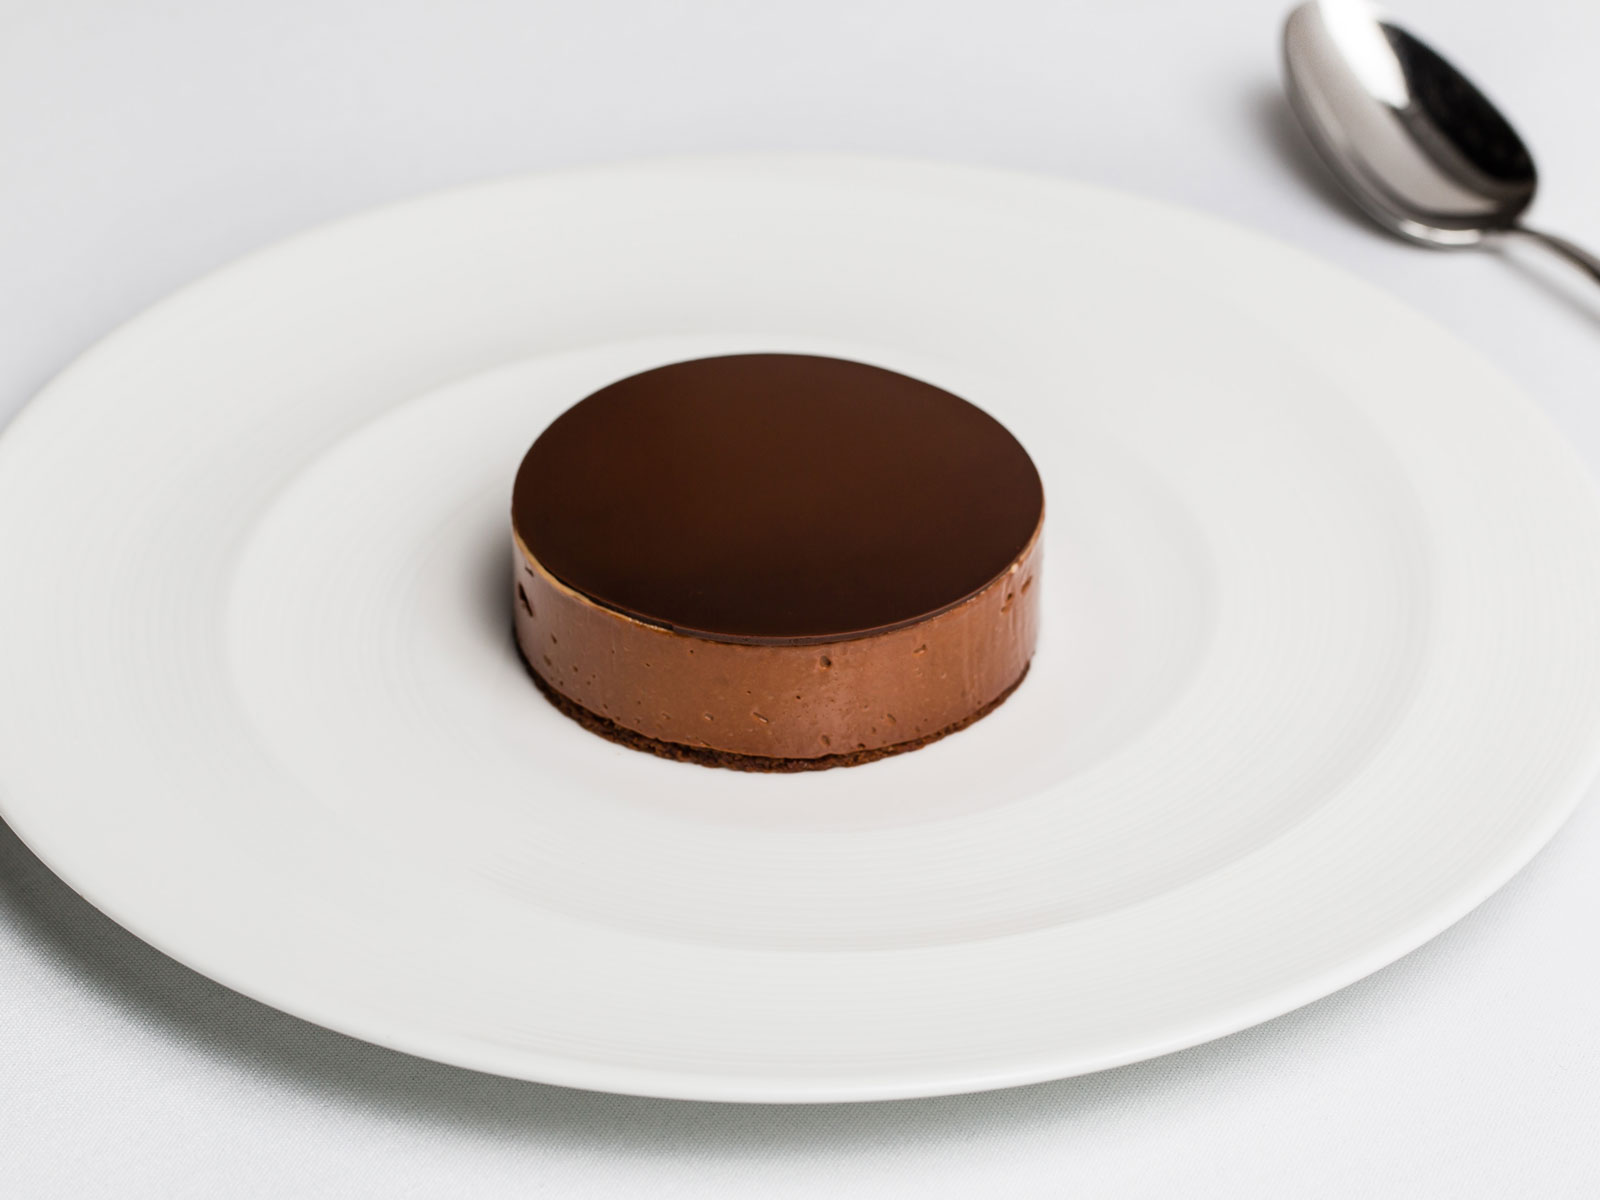 Chocolate Cake From Across The Water